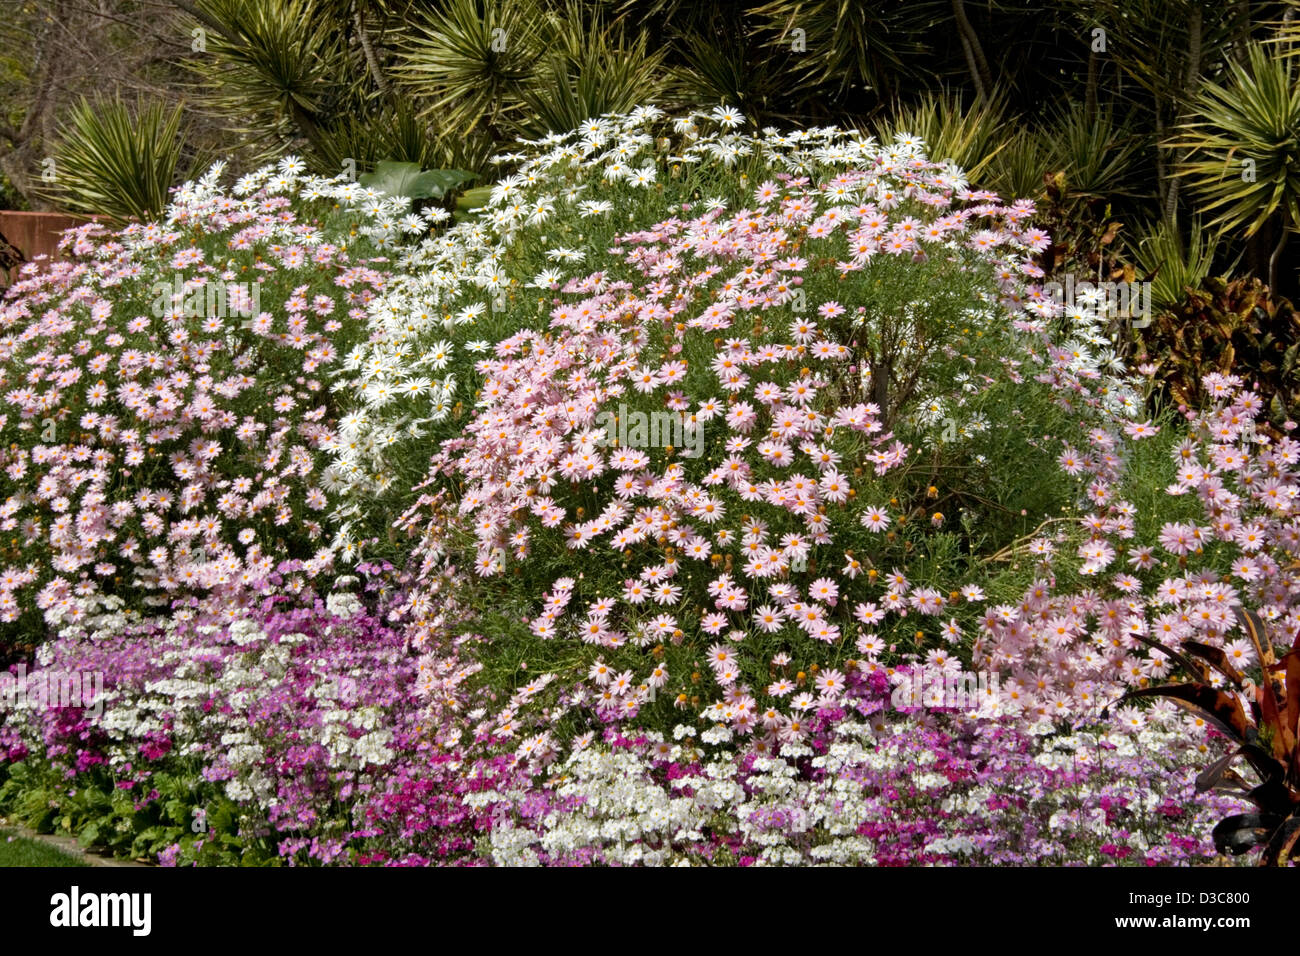 Mounds of pink and white flowers and foliage of osteospermum daisies mounds of pink and white flowers and foliage of osteospermum daisies in public parklands brisbane australia izmirmasajfo